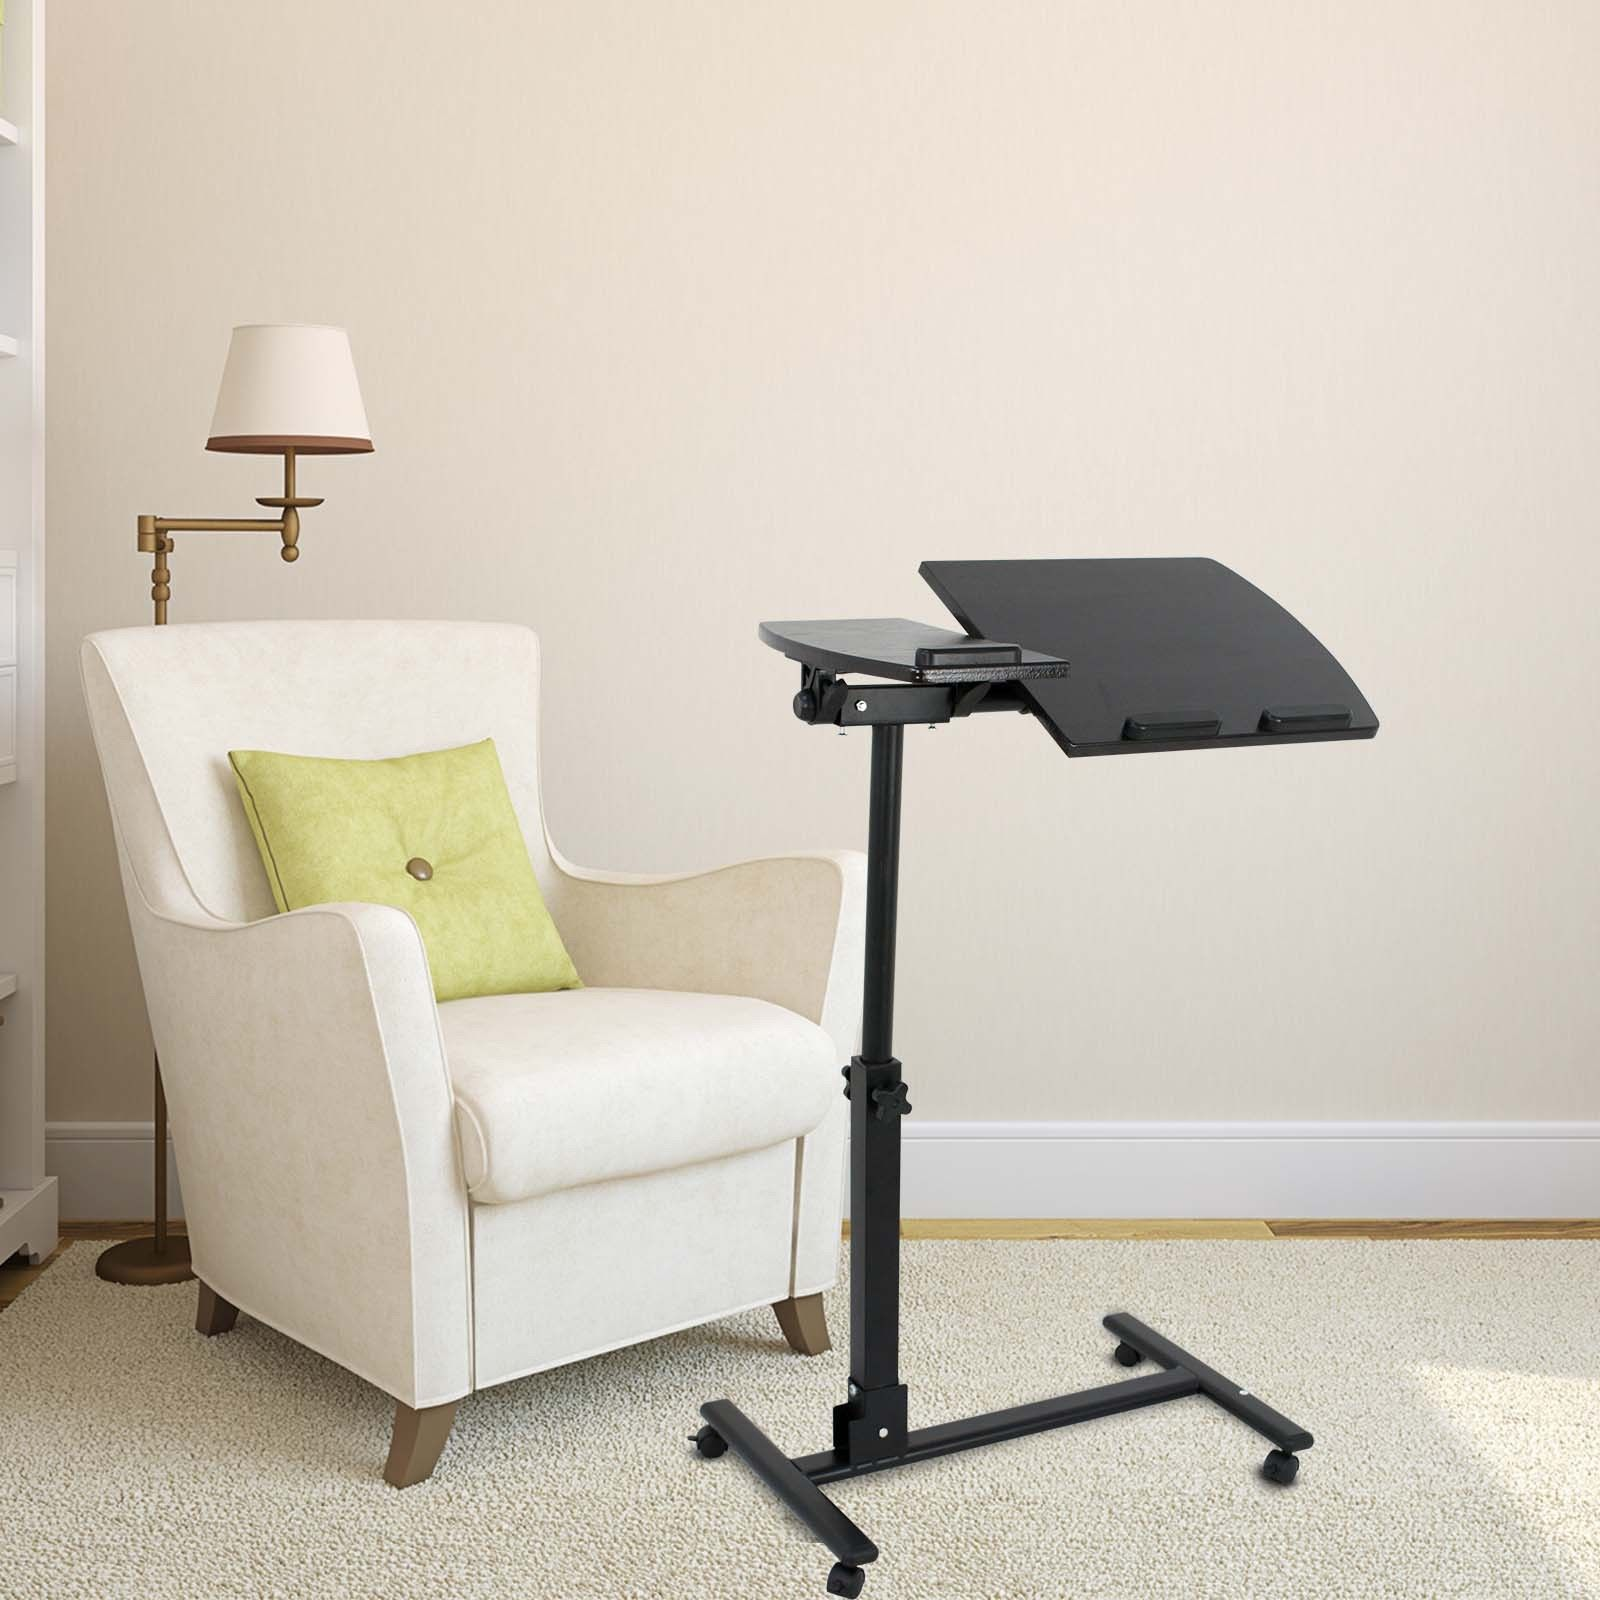 Zeny Angle Height Adjustable Rolling Laptop Notebook Desk Over Sofa Bed Table Stand